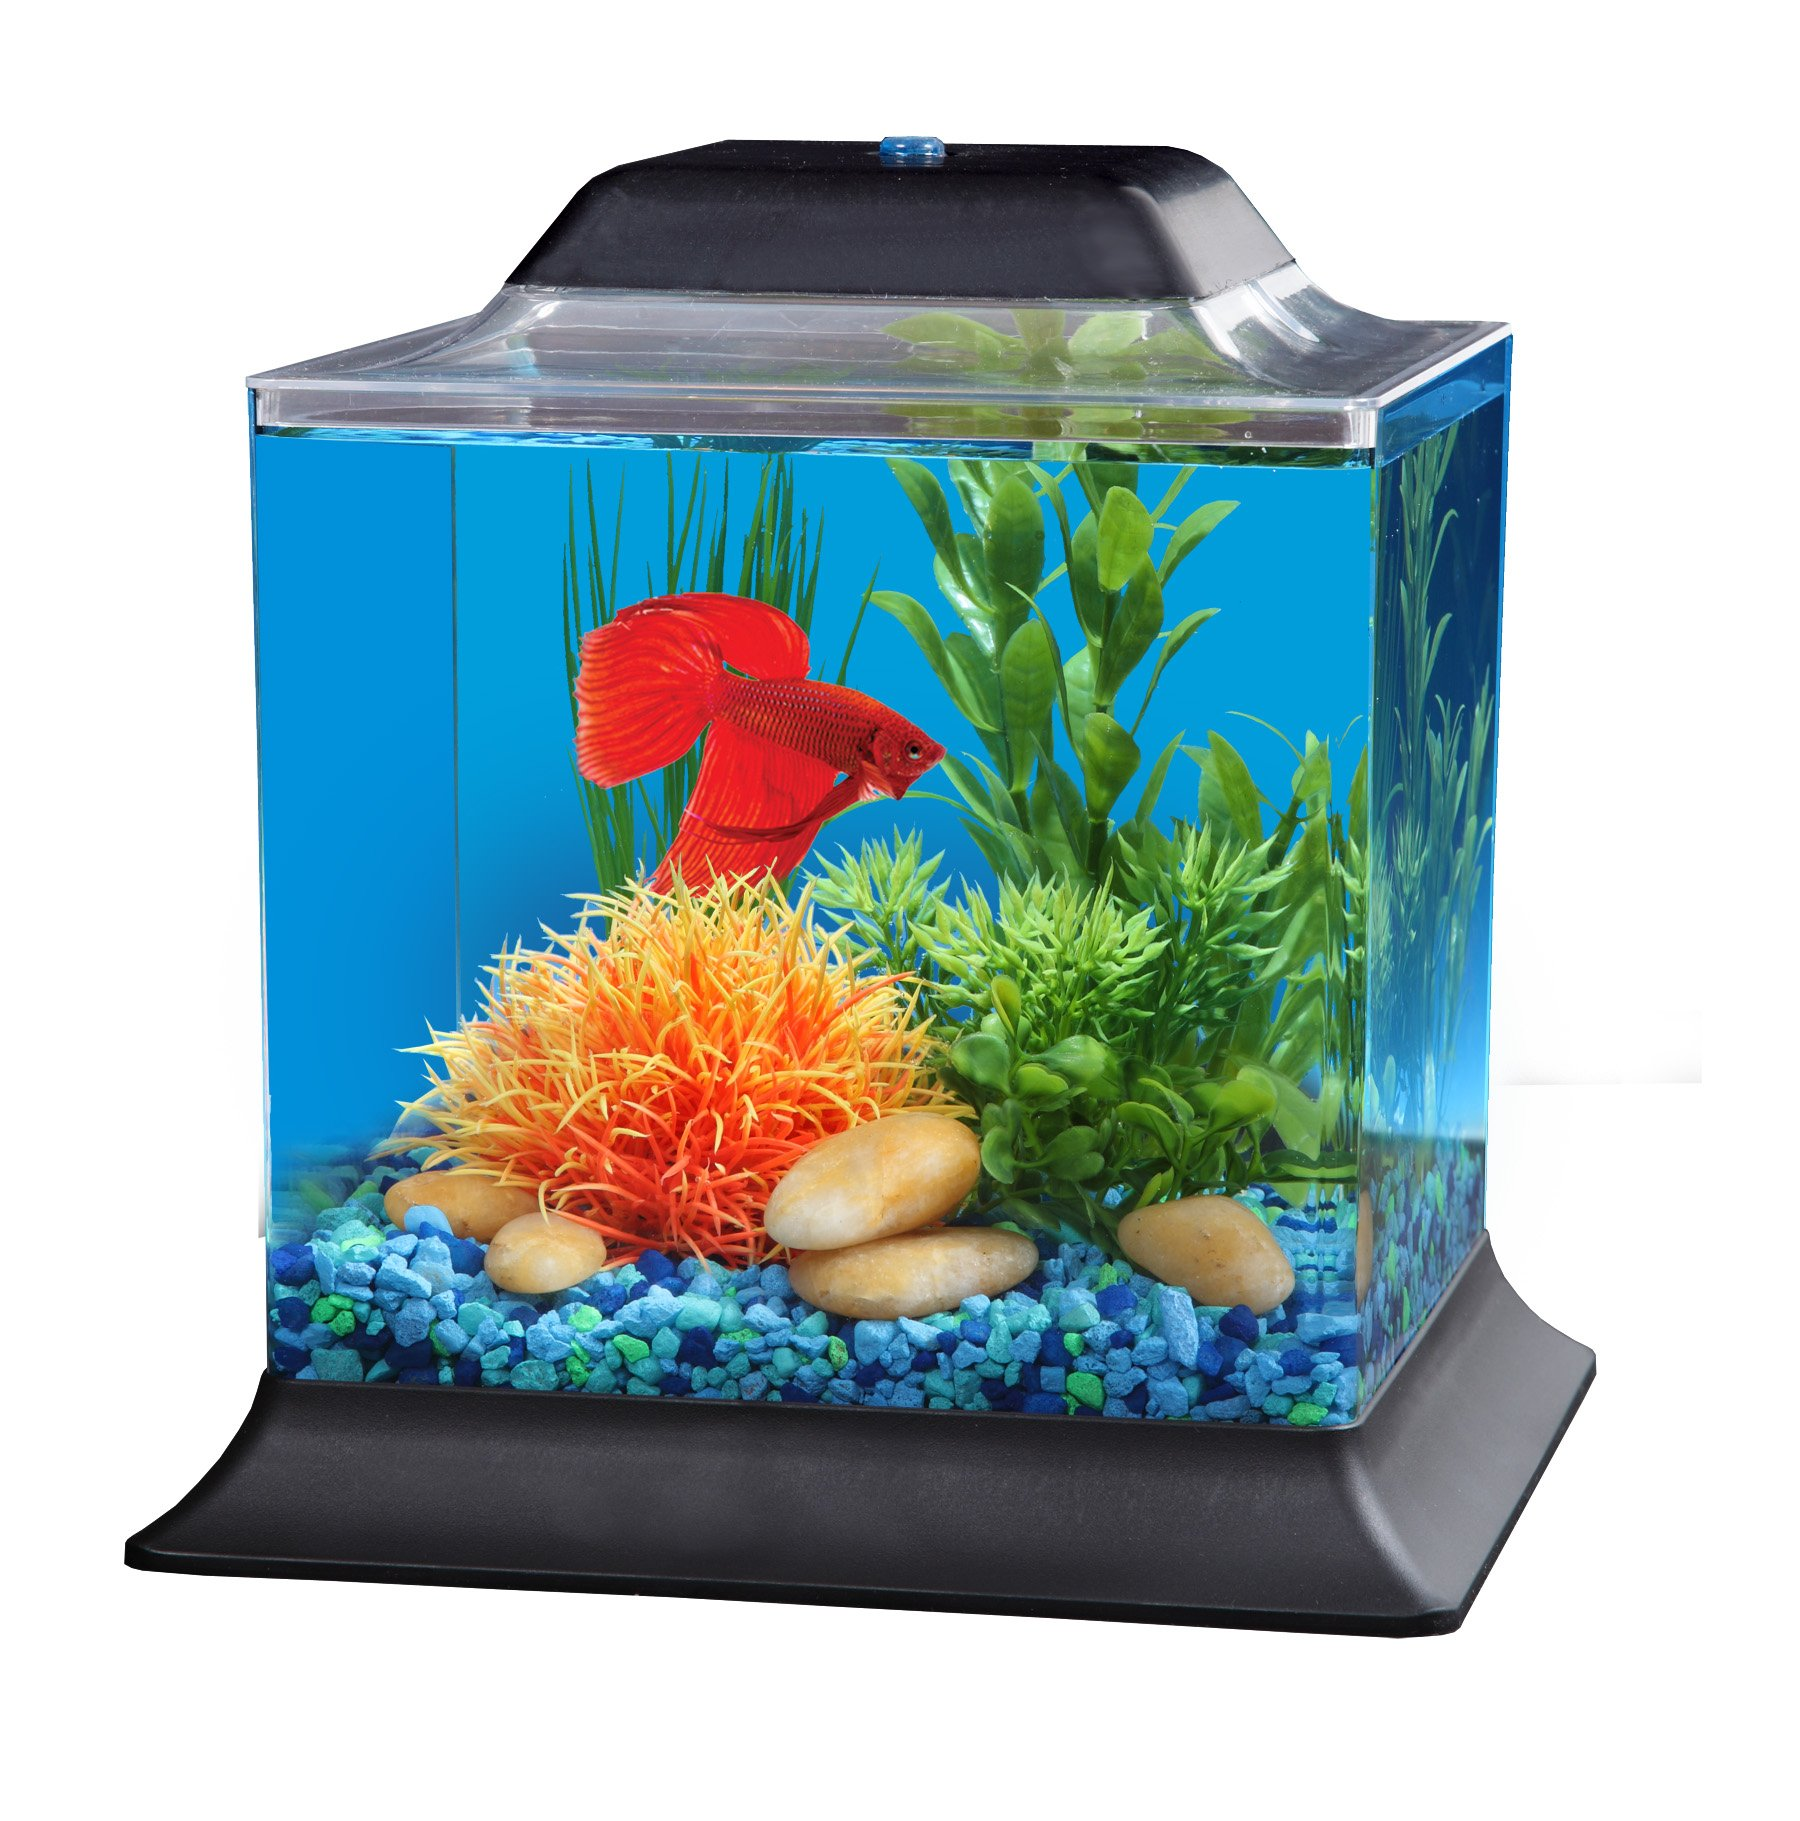 Unique betta fish tank cube with led light betta fish tank for Betta fish tanks amazon